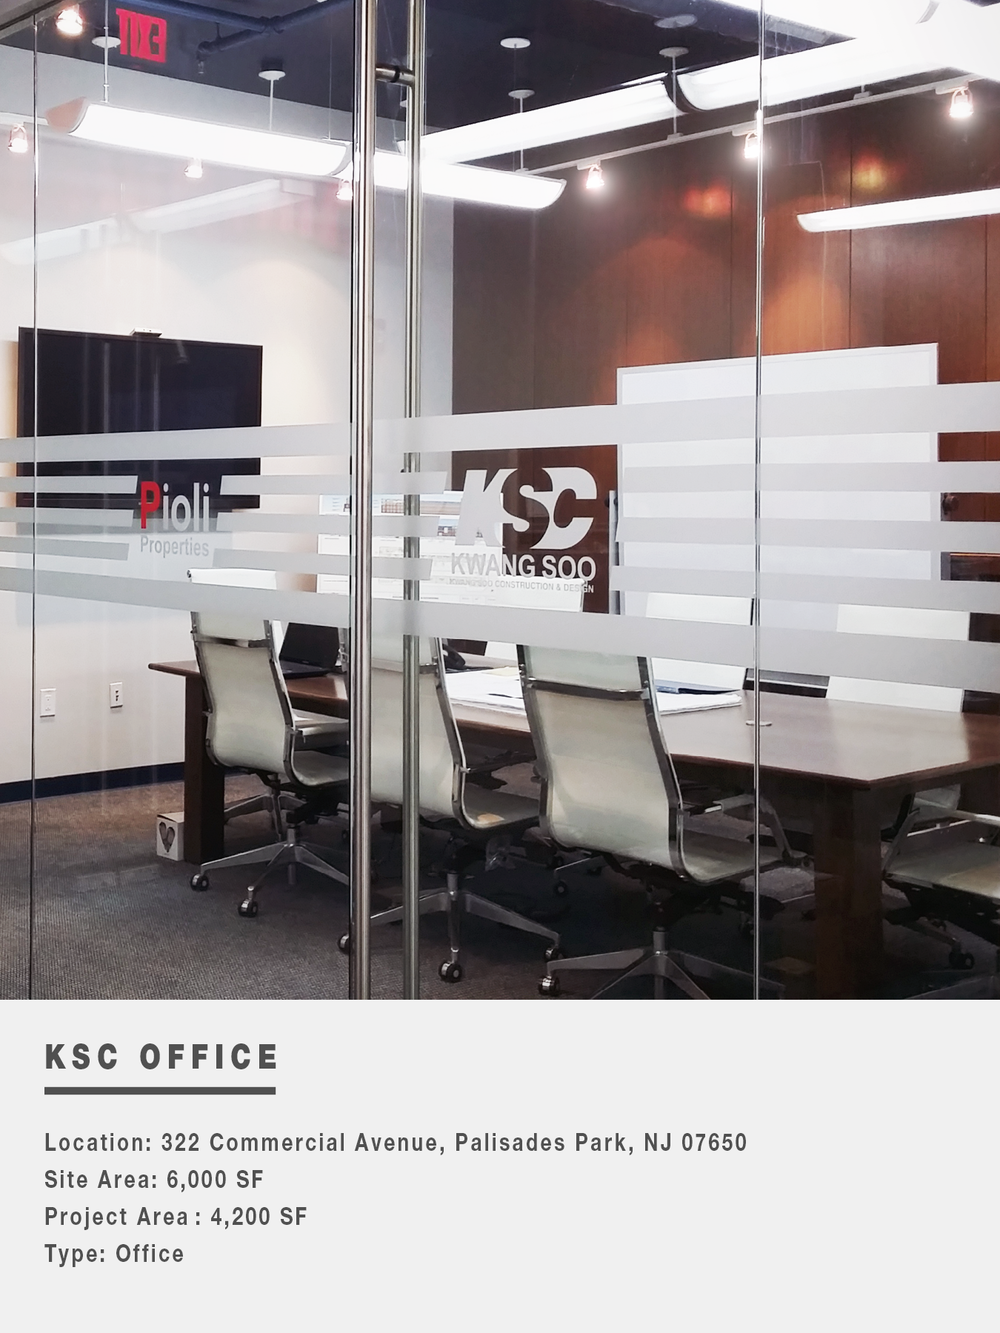 KSC OFFICE